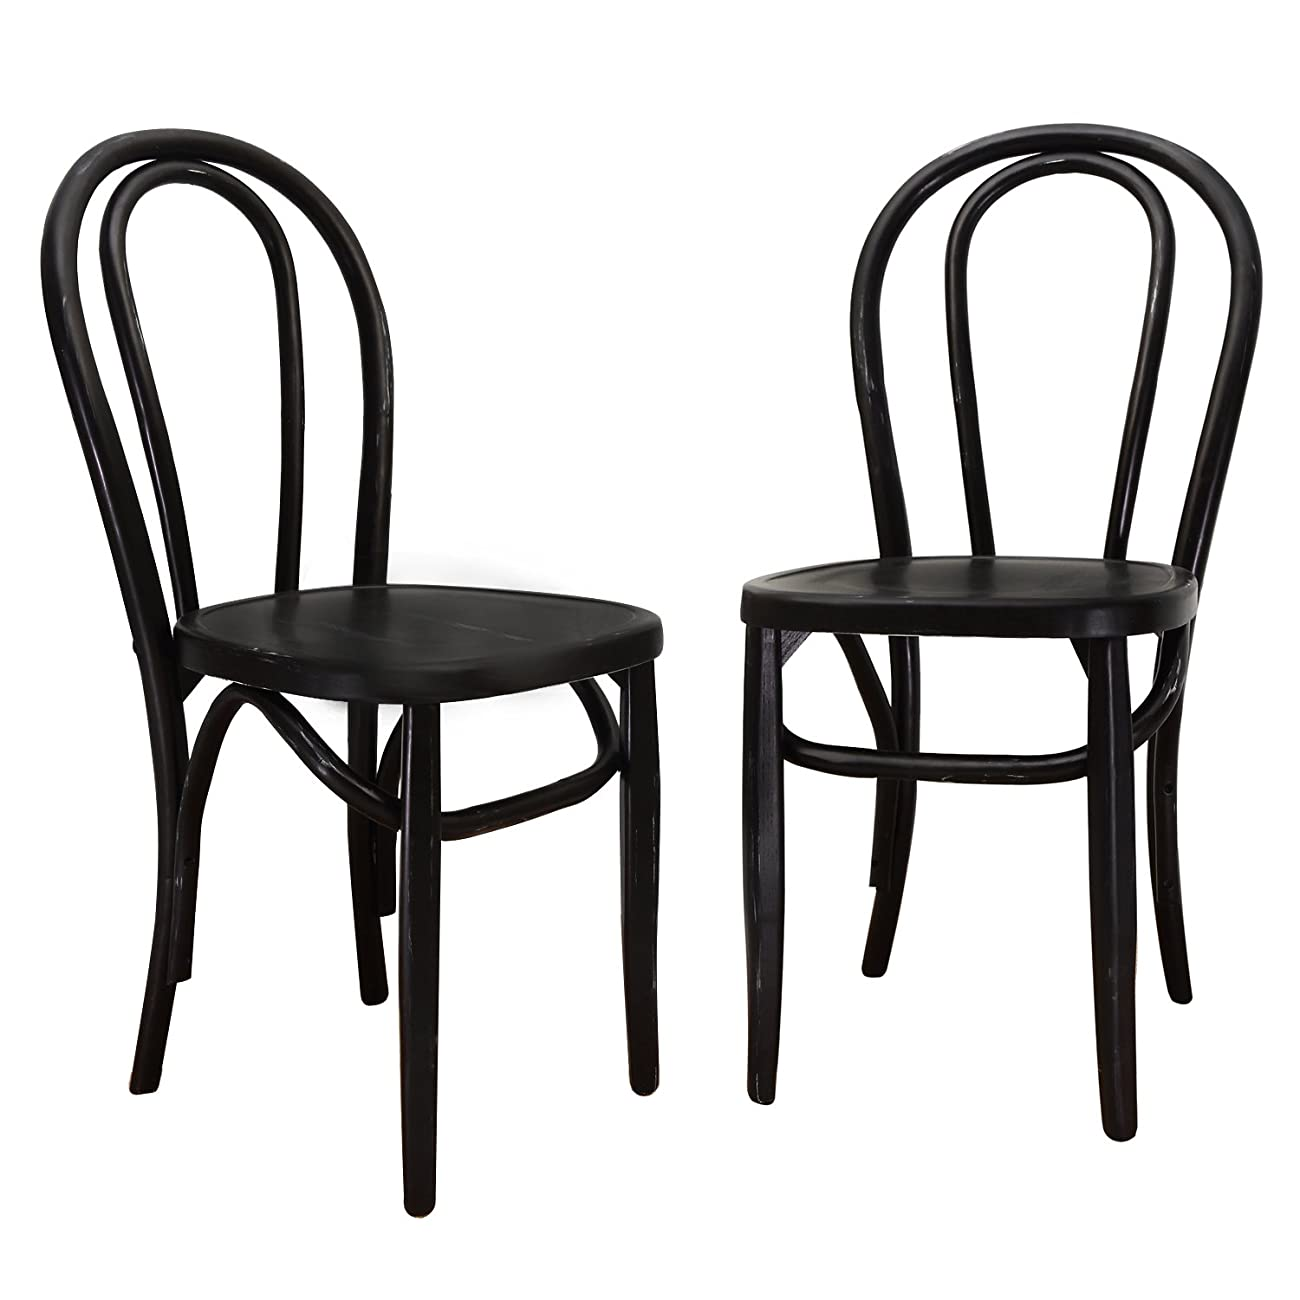 Joveco Vintage Style Solid Wood Dining Chair - Set of 2 (Black) 0